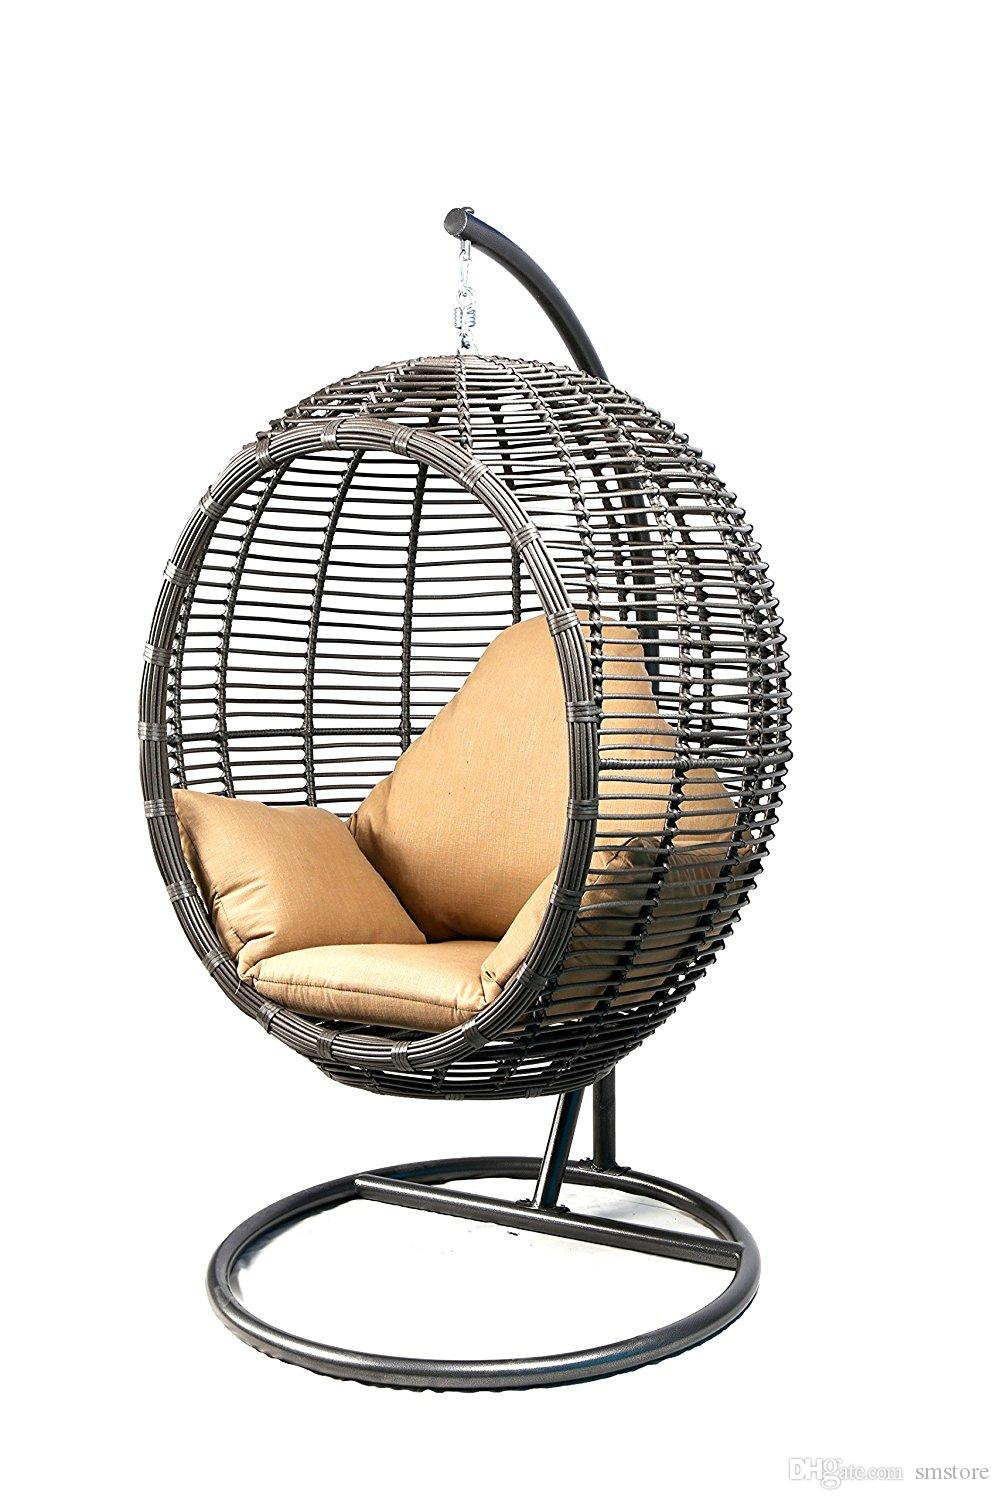 2018 Love Sex Chair Oval Egg Hanging Patio Lounge Chair Chaise Porch Swing  Hammock Single Seat Stand Wicker With Cushion, Bondage Couple For Couples  From ...